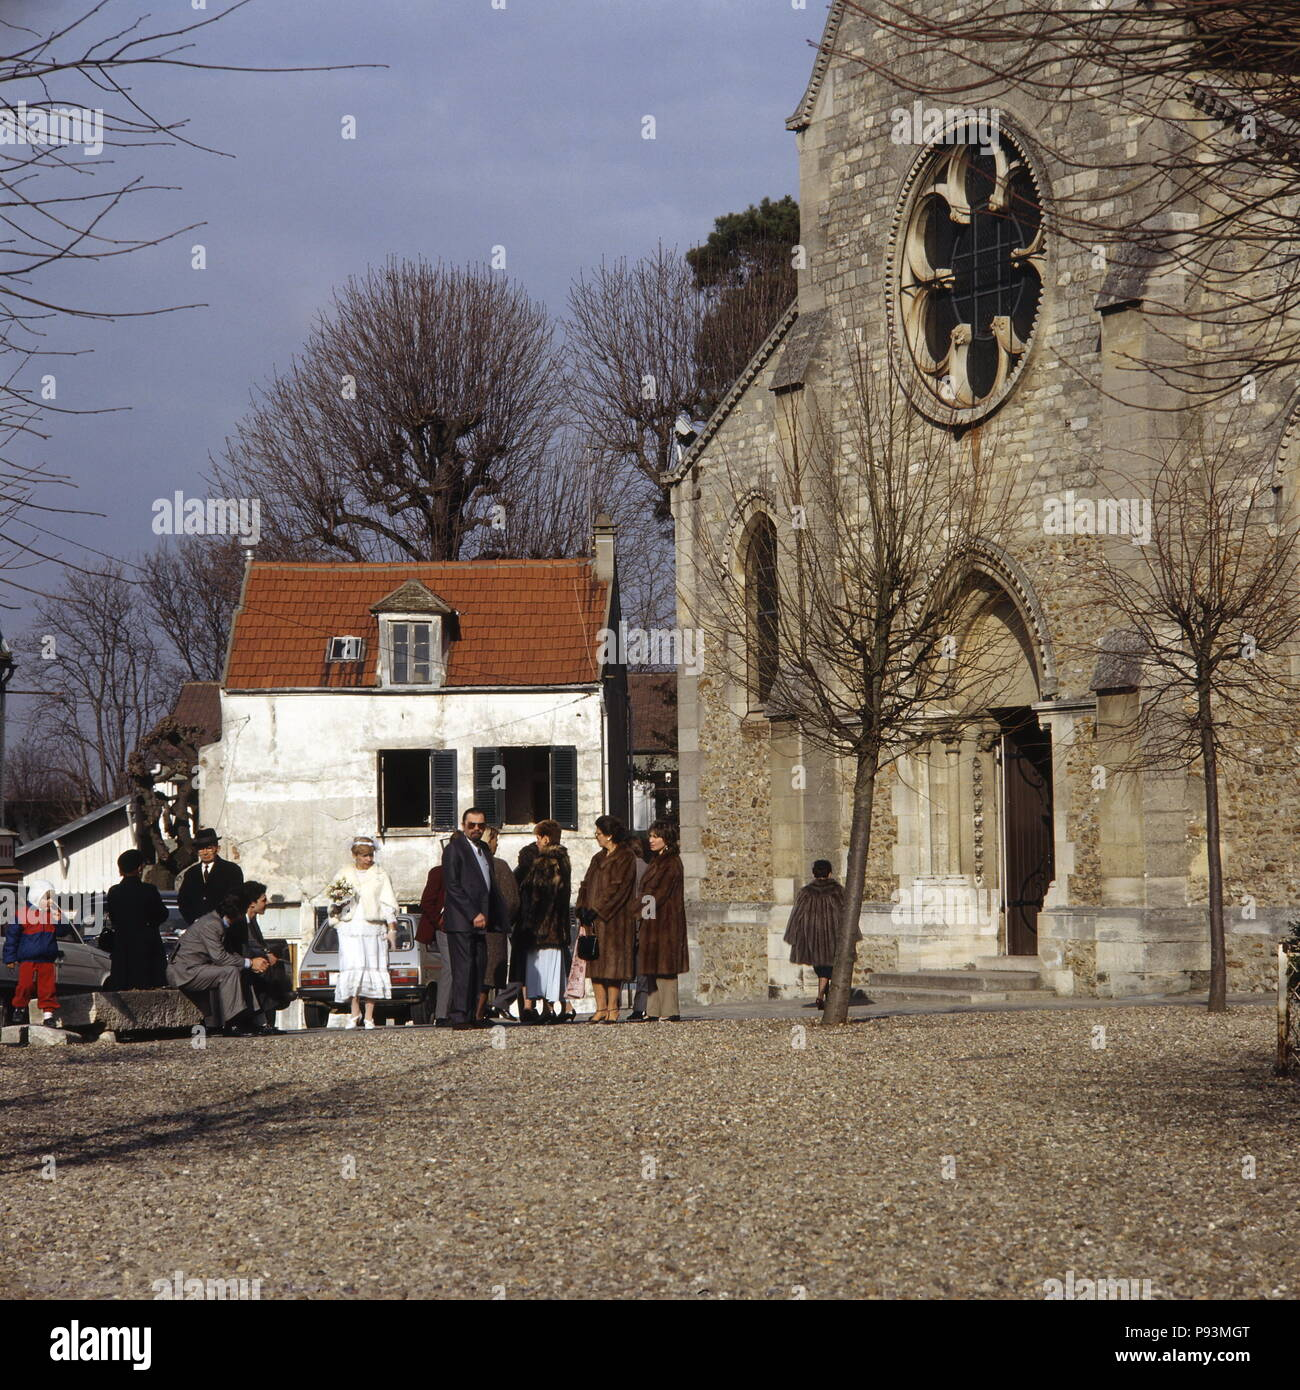 AJAXNETPHOTO.  LOUVECIENNES, FRANCE. - WEDDING PARTY - GATHERED OUTSIDE THE CHURCH - EGLISE SAINT-MARTIN - IN THE VILLAGE CENTRE. OLD VILLAGE ON OUTSKIRTS OF PARIS FREQUENTED BY IMPRESSIONIST ARTISTS OF TH 19TH CENTURY. PHOTO:JONATHAN EASTLAND/AJAX REF:85_8 - Stock Image